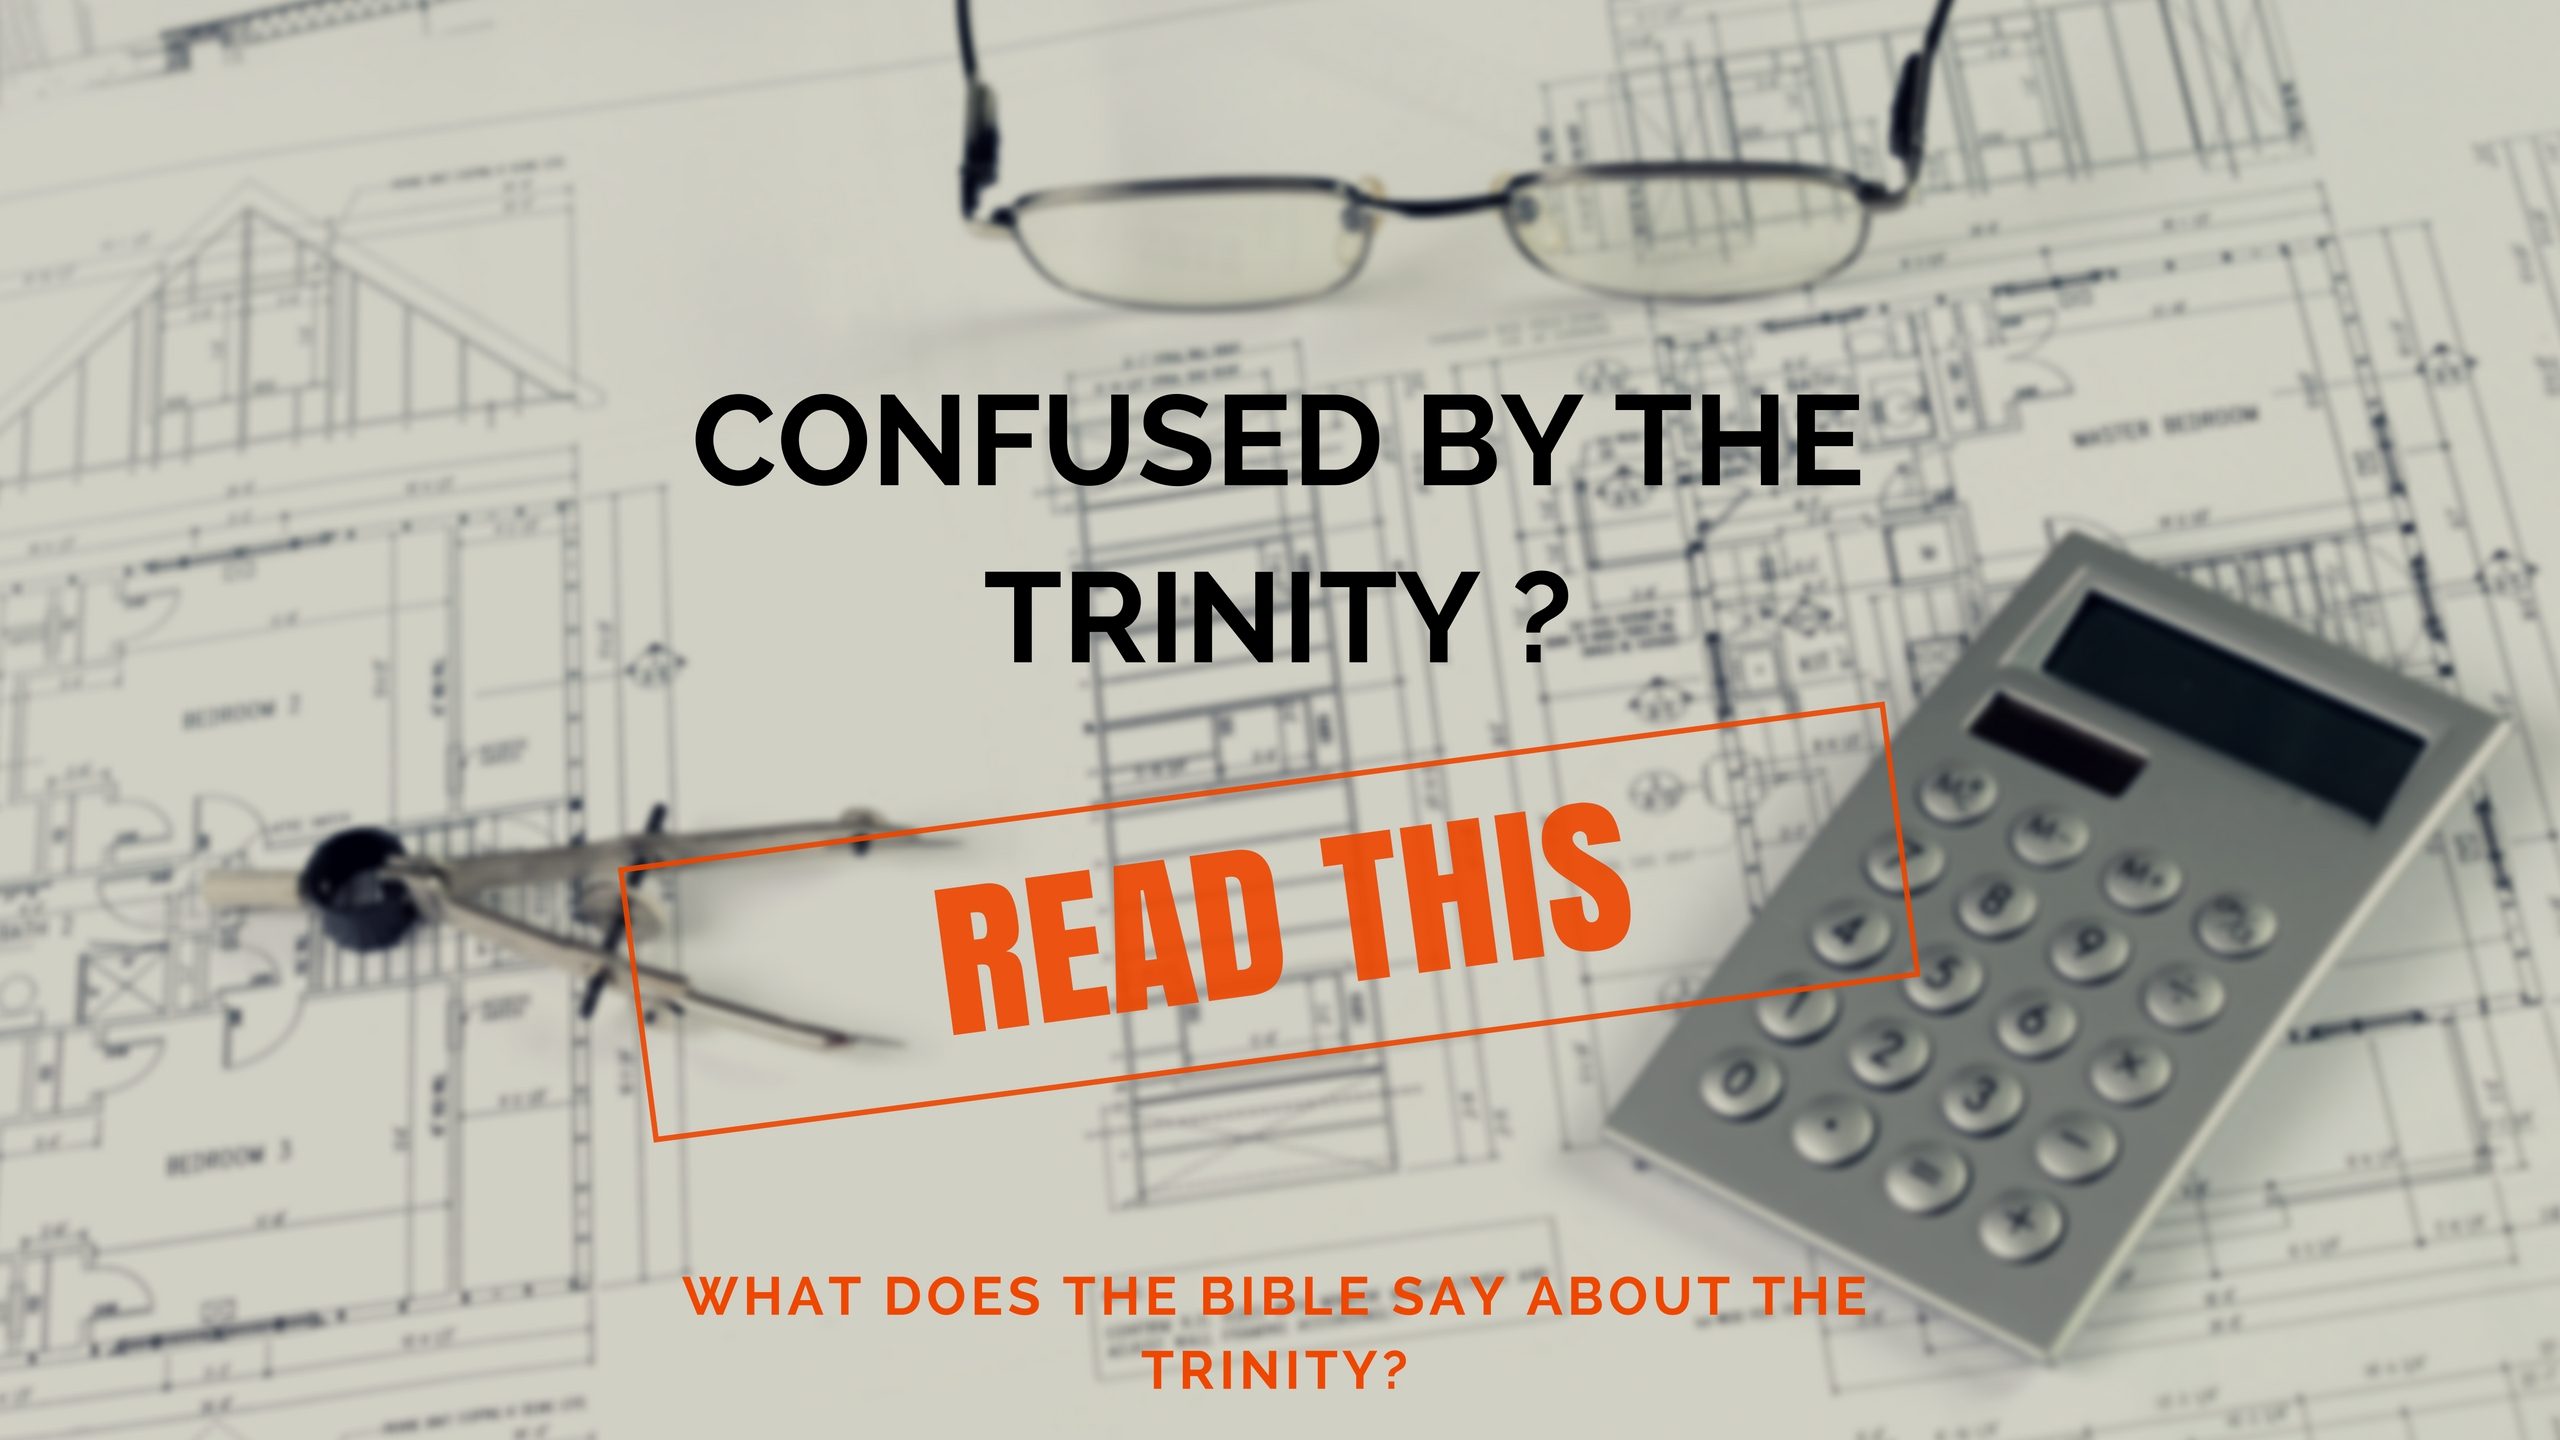 trinity, confusing, Bible